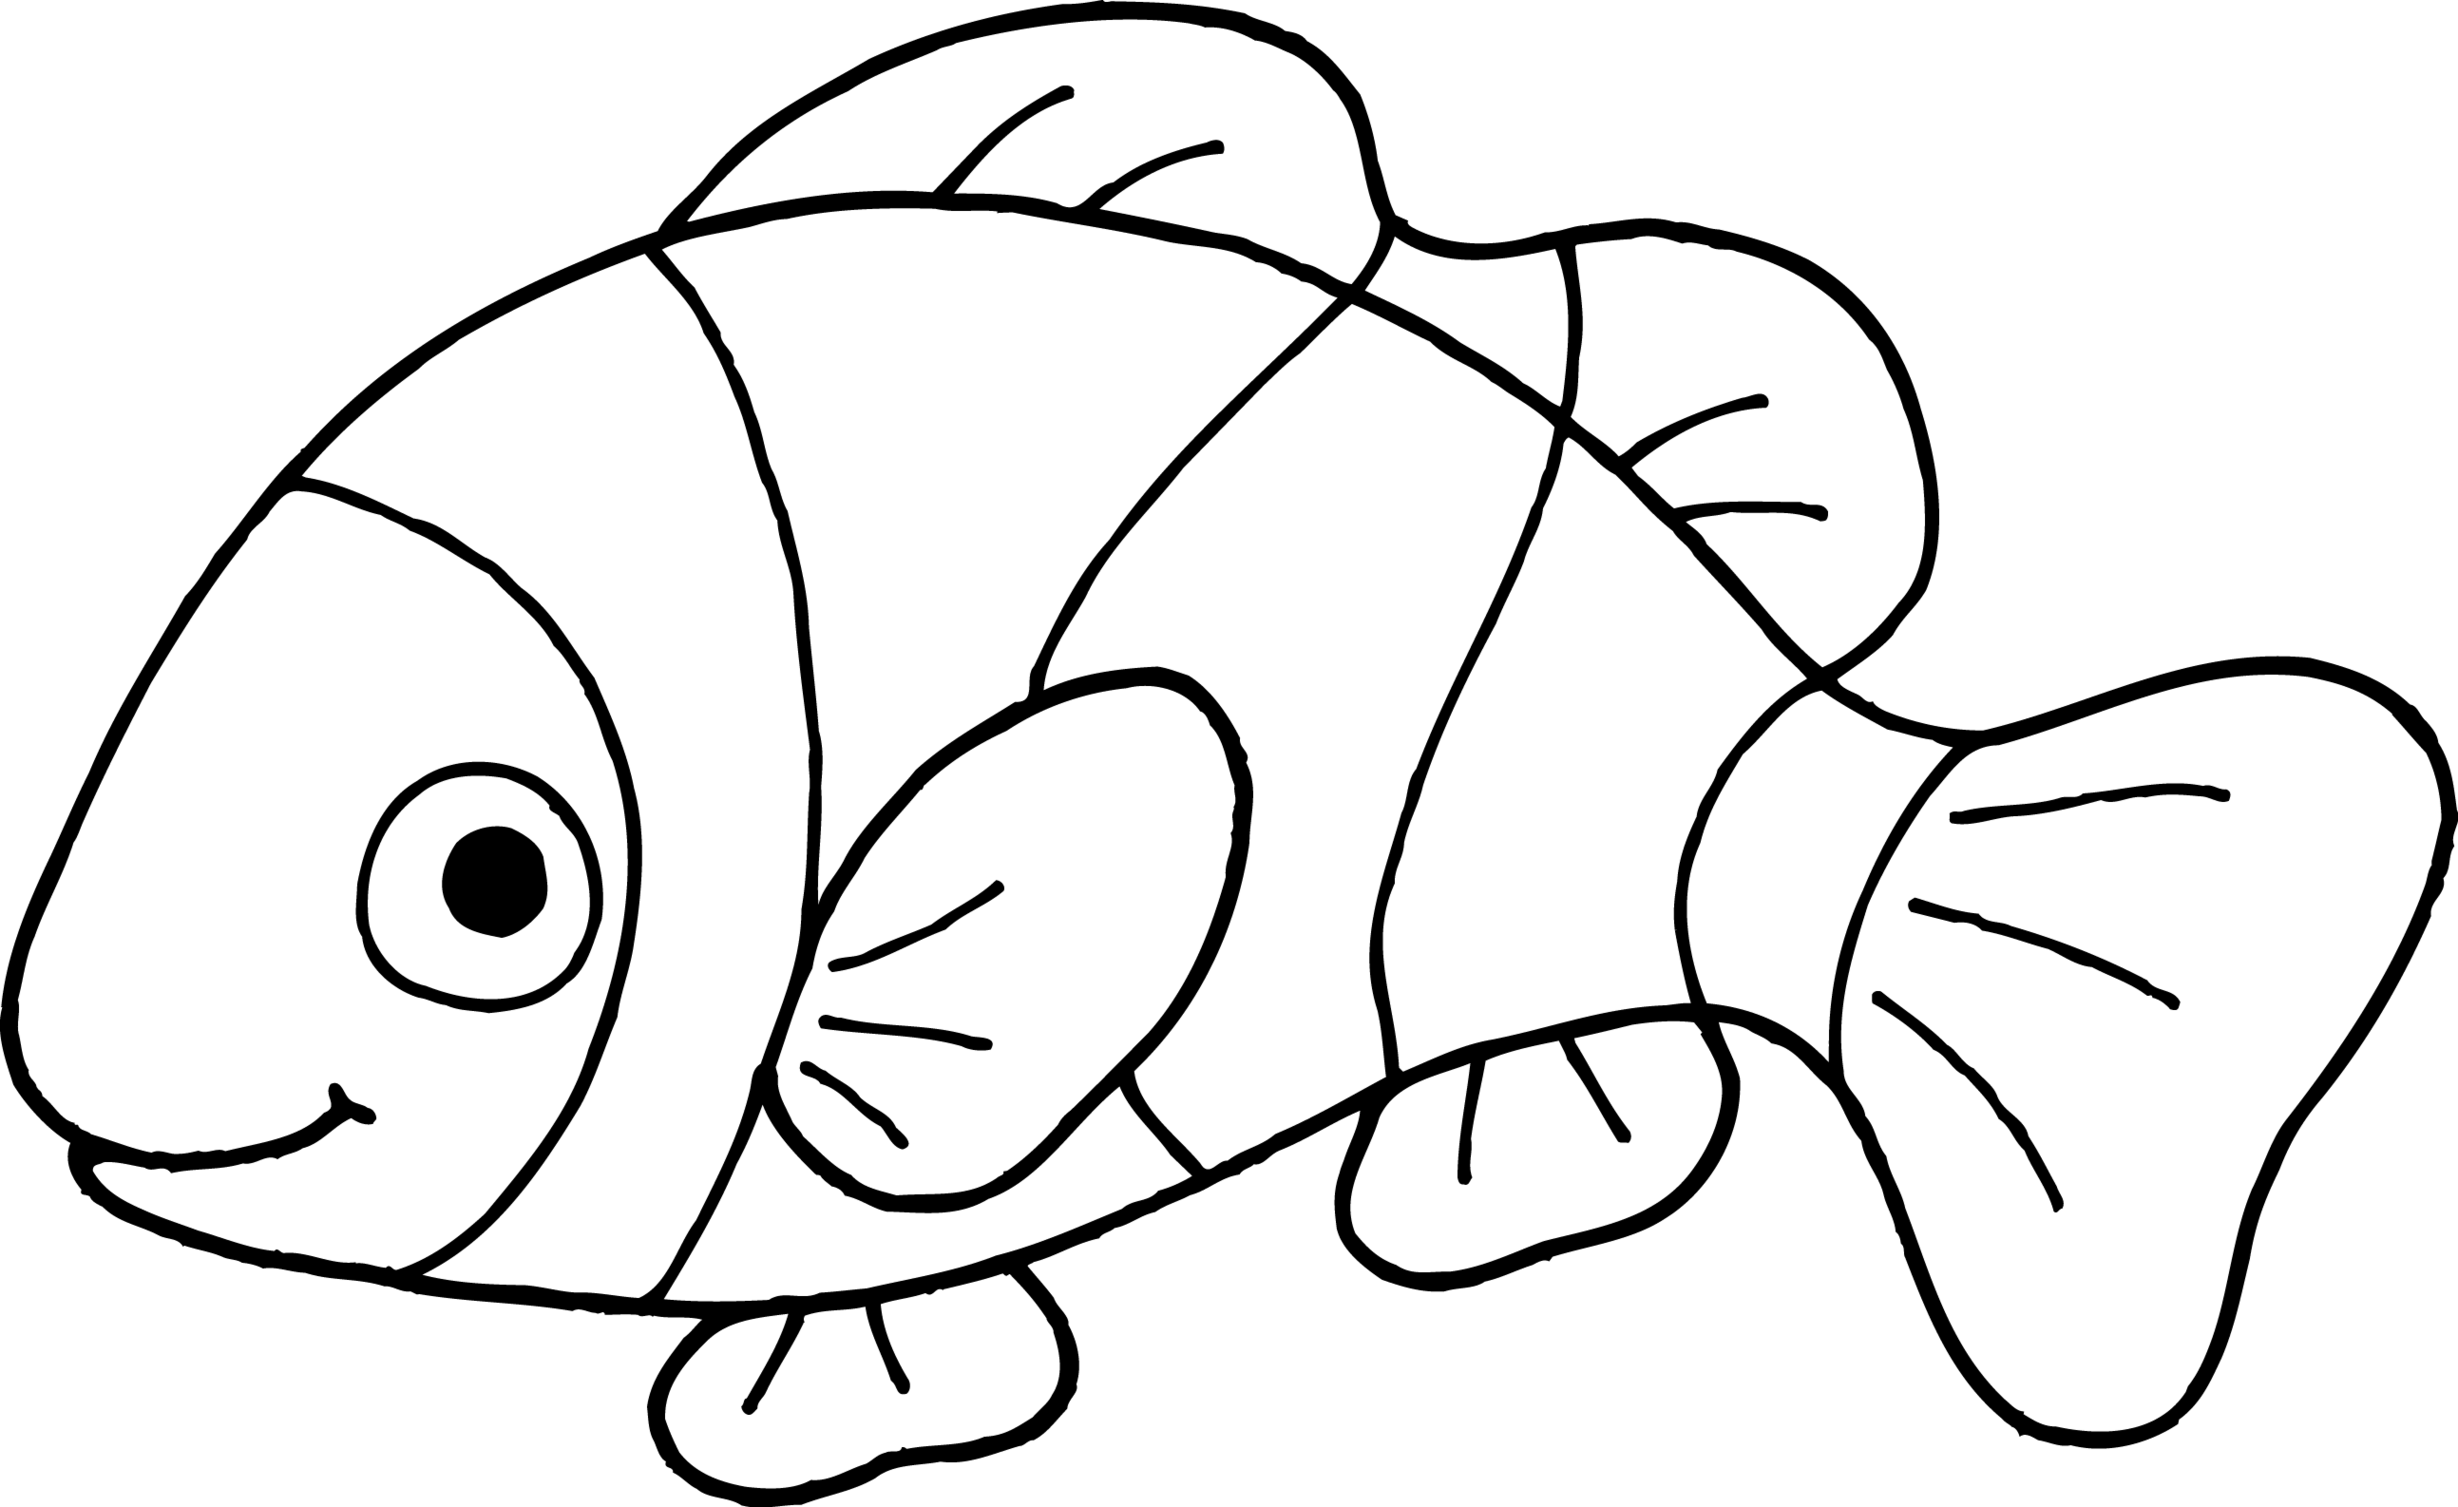 2458x1507 Clownfish Clipart Black And White